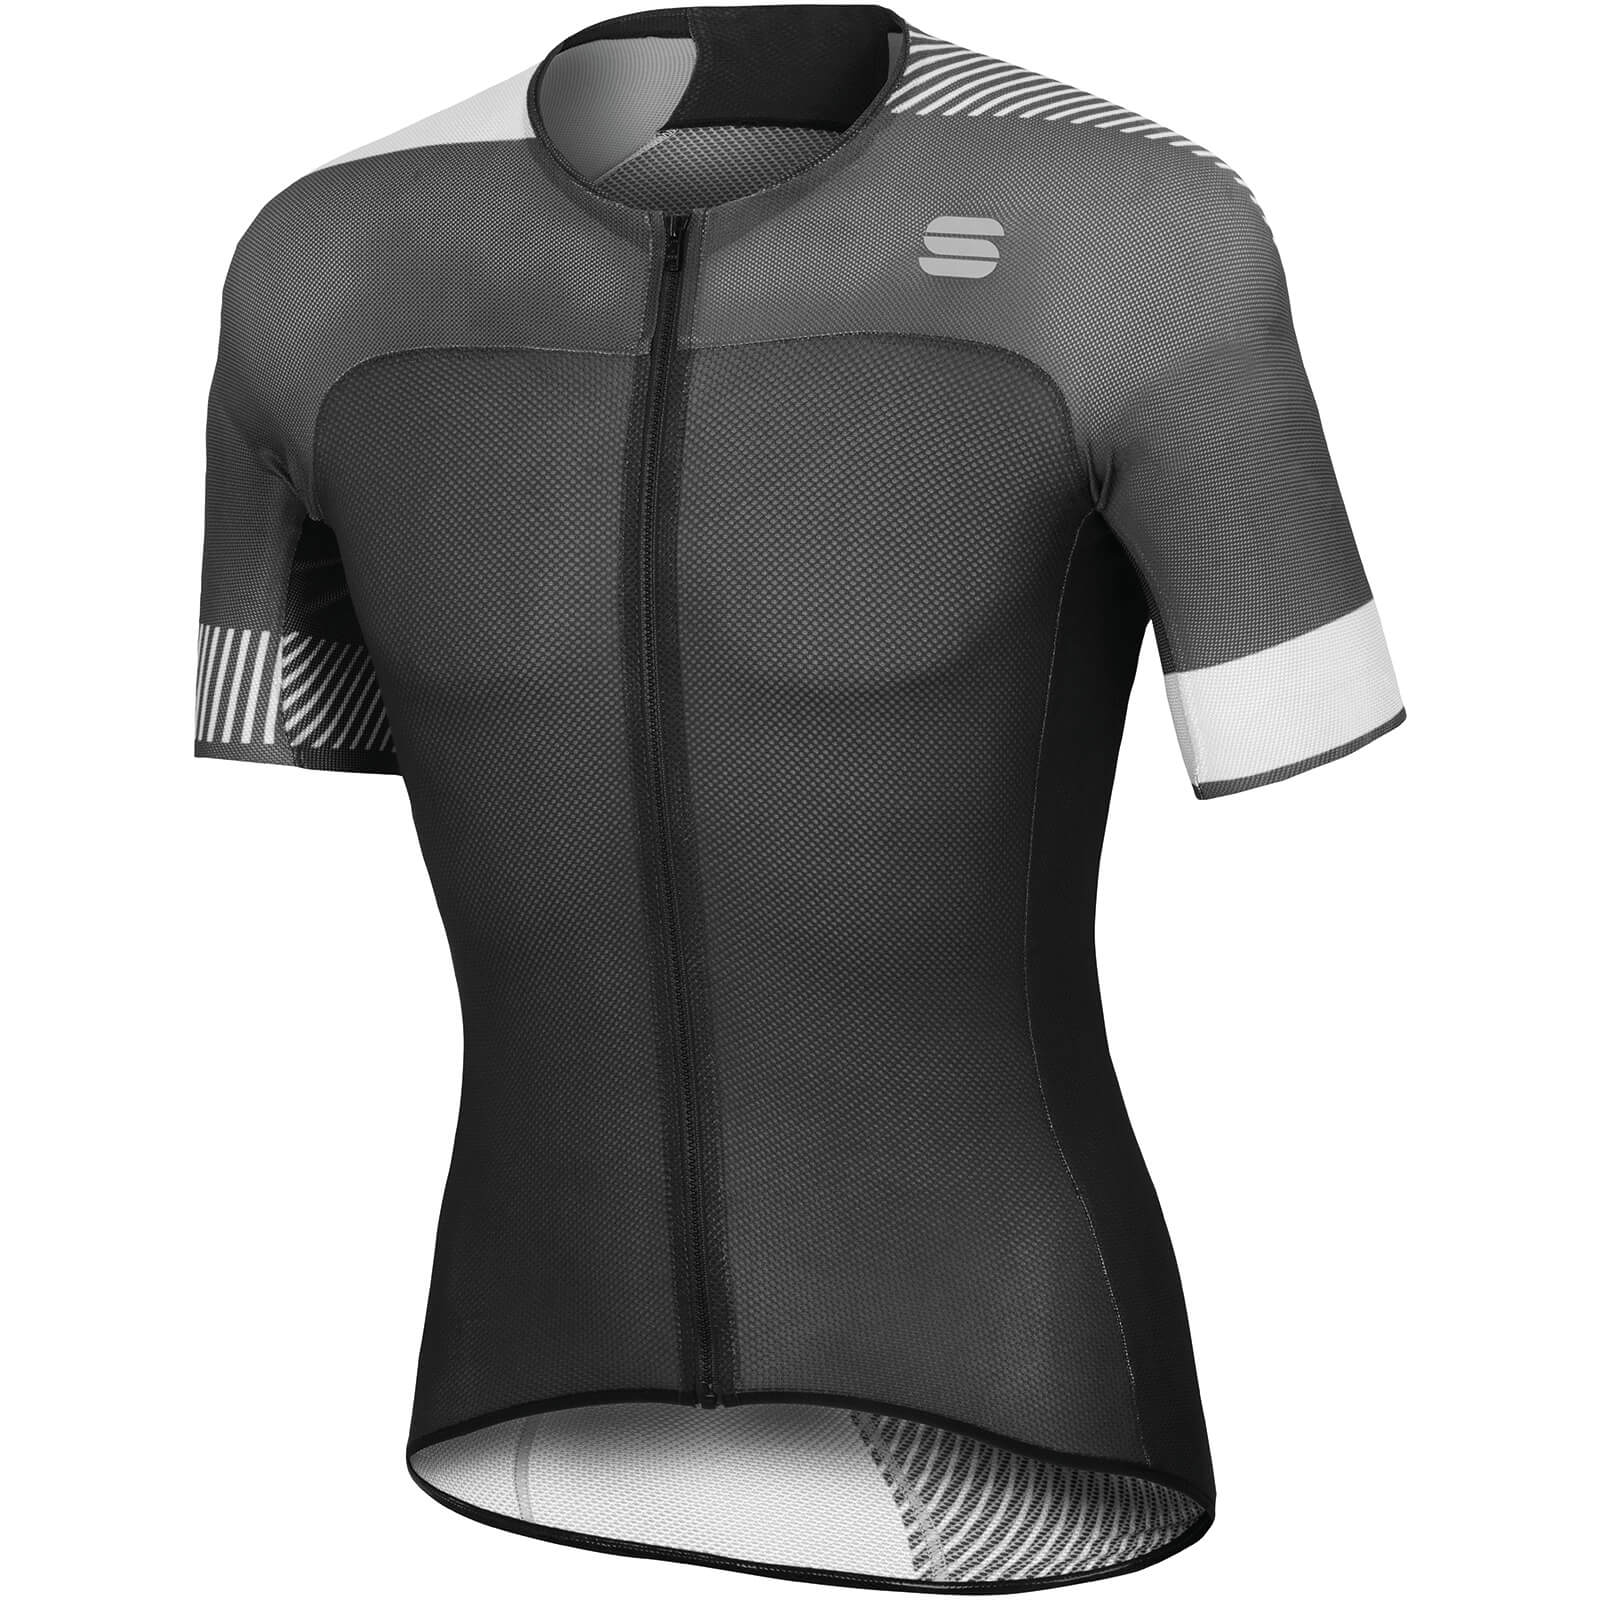 Sportful BodyFit Pro Light Jersey - Black/White